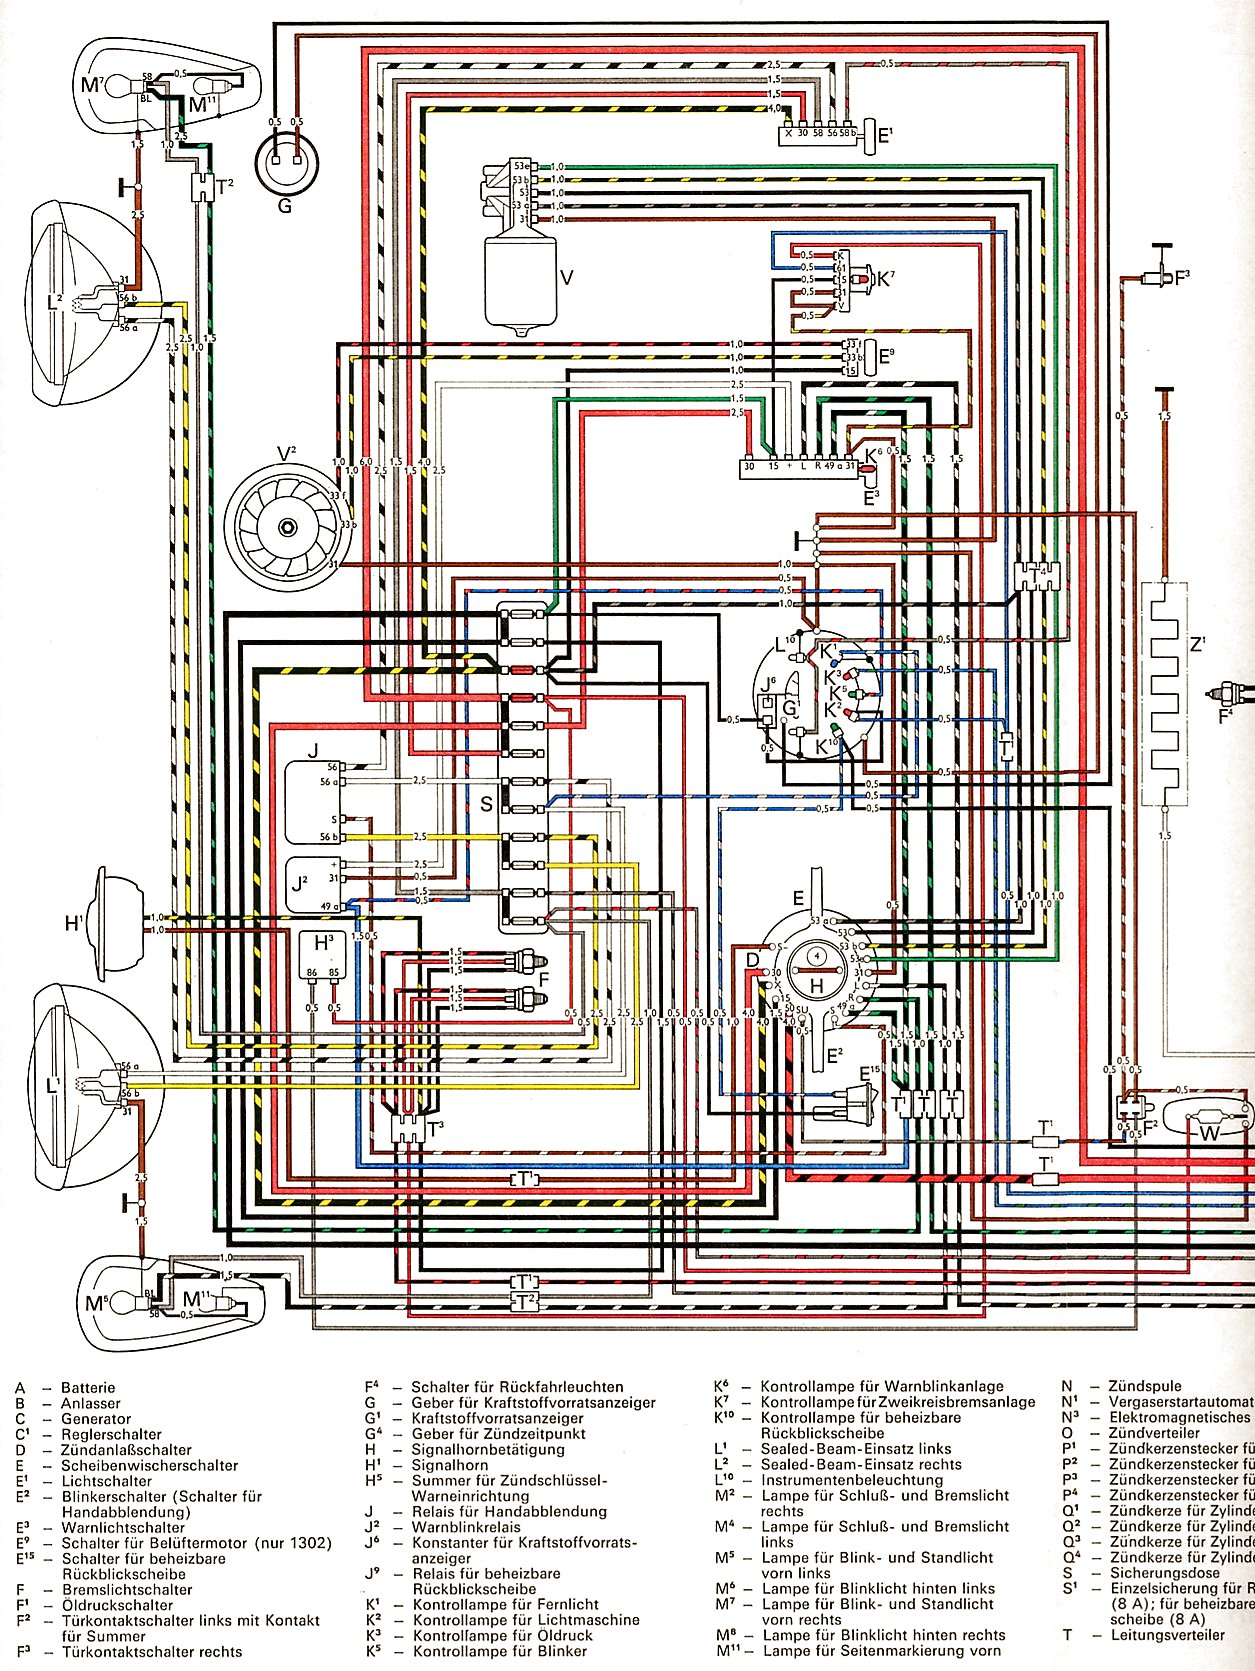 868a8 1979 vw super beetle wiring diagram | wiring resources  wiring resources